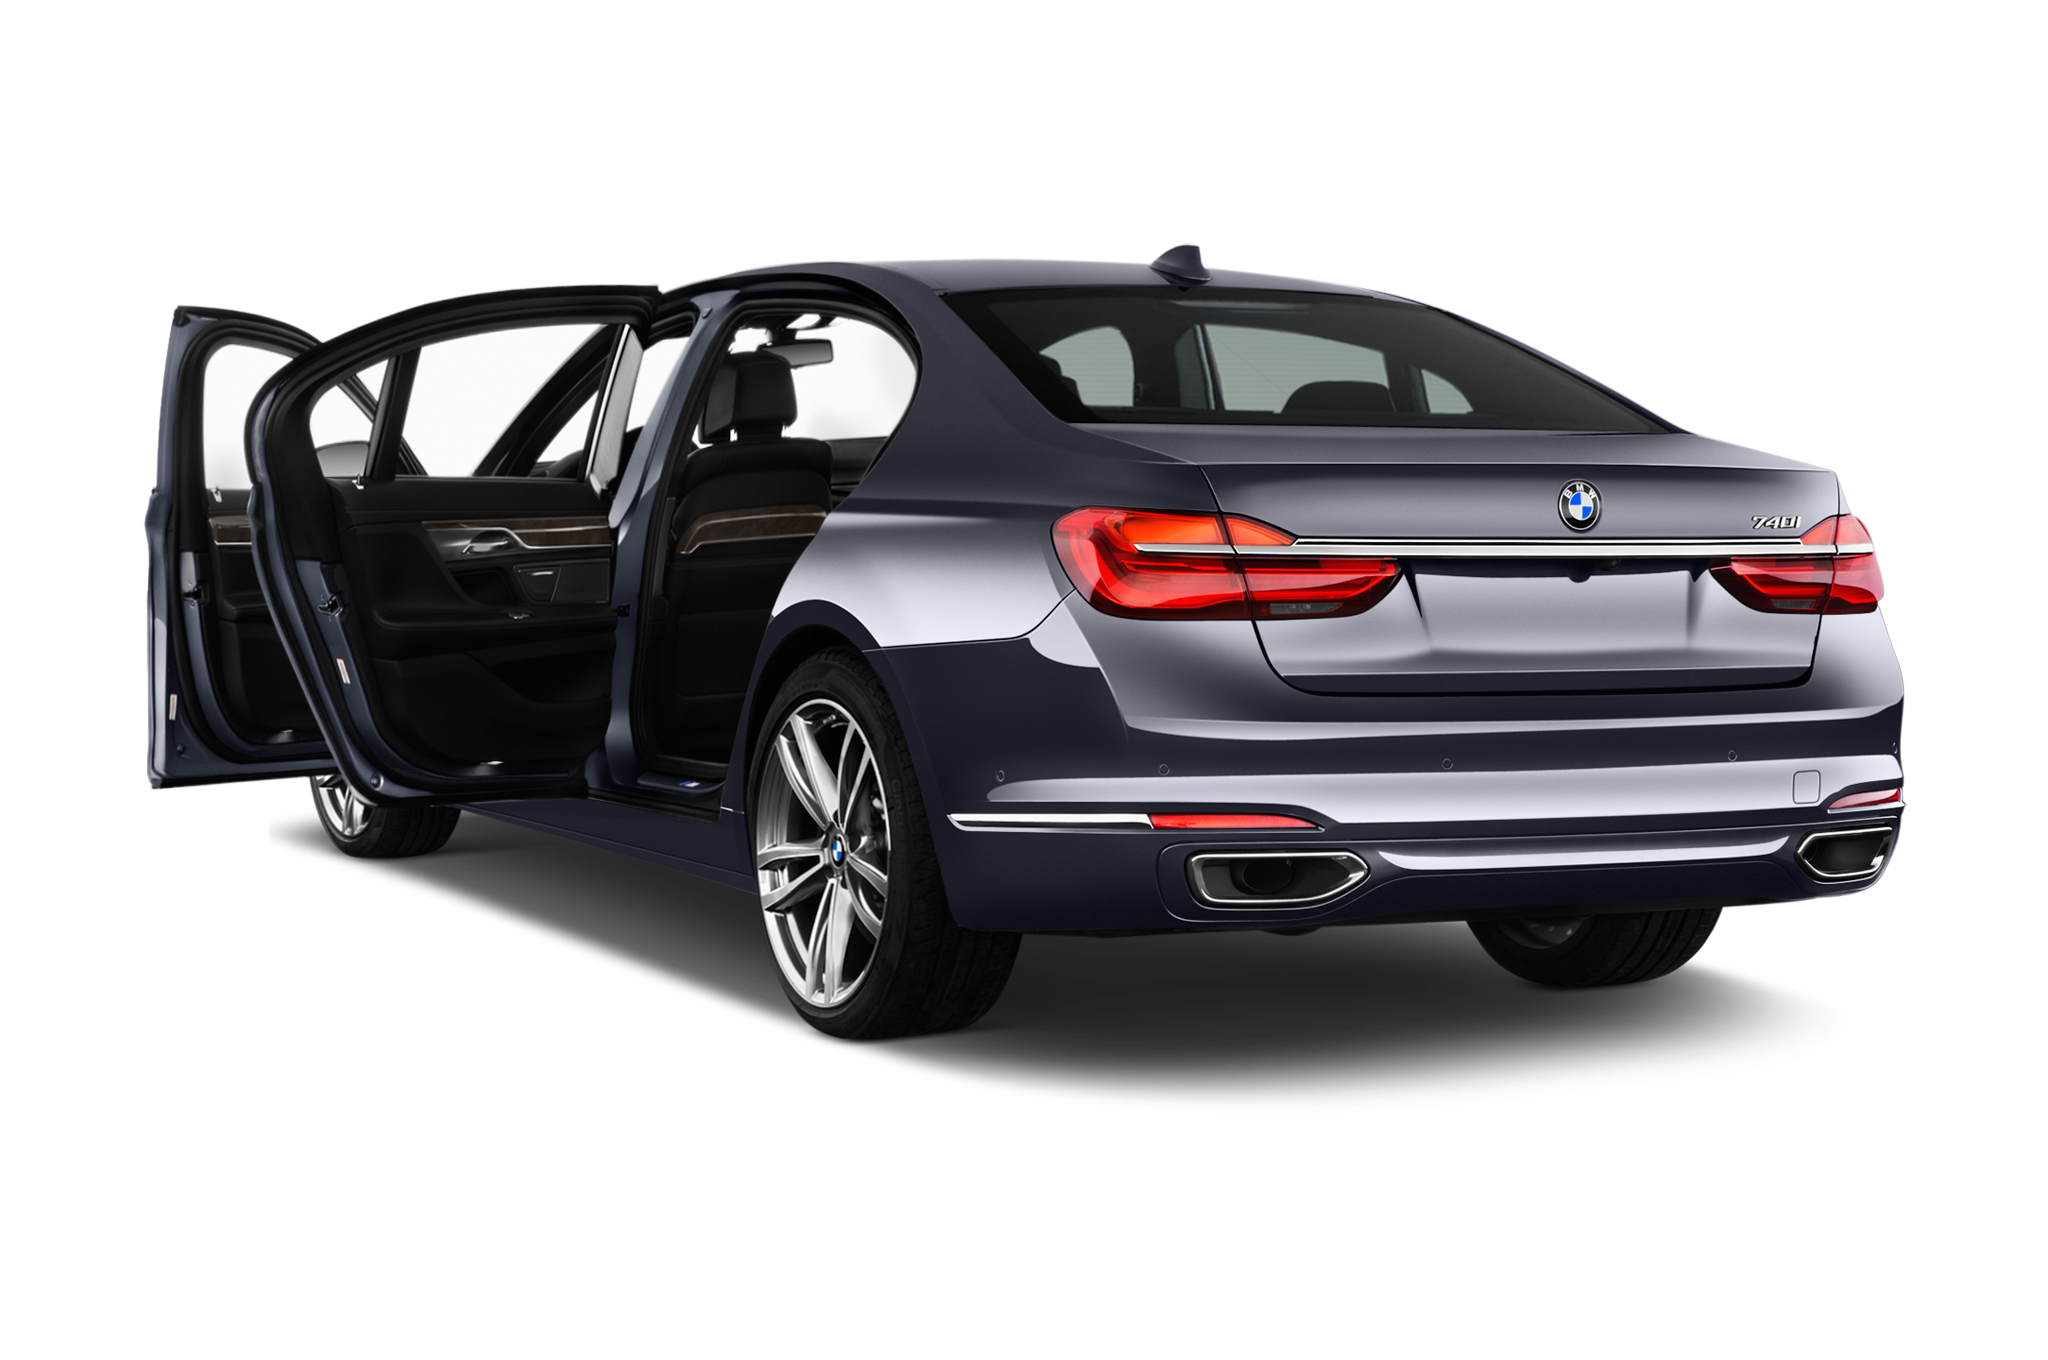 Bmw 7 Series Best Luxury Cars: 2017 BMW Alpina B7 XDrive Is A 600-HP, 193-MPH Luxury Sedan